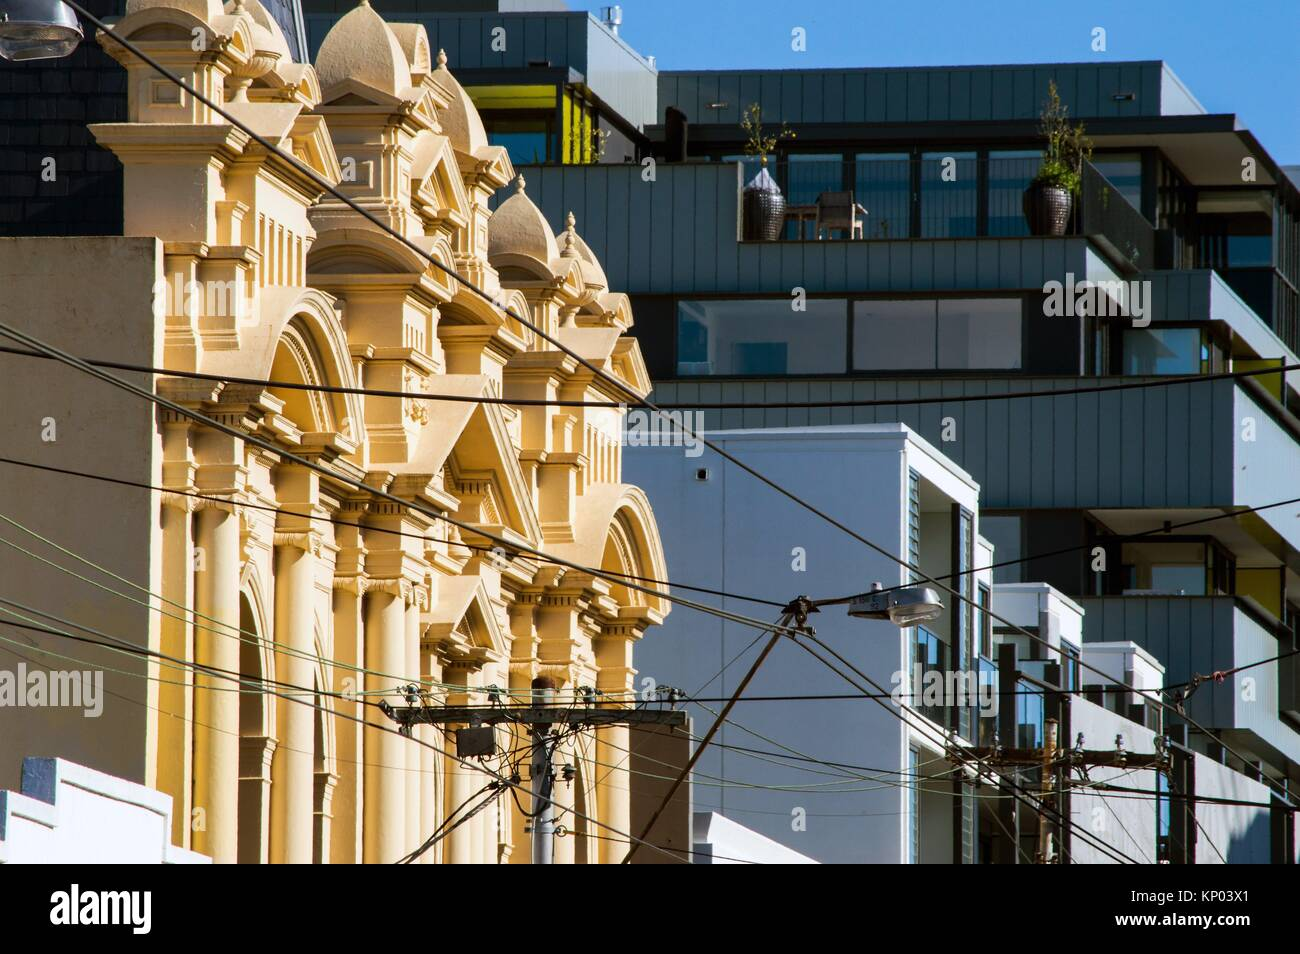 Old Post Office building and new apartment block, Smith Street, Collingwood, Melbourne, Victoria, Australia Stock Photo